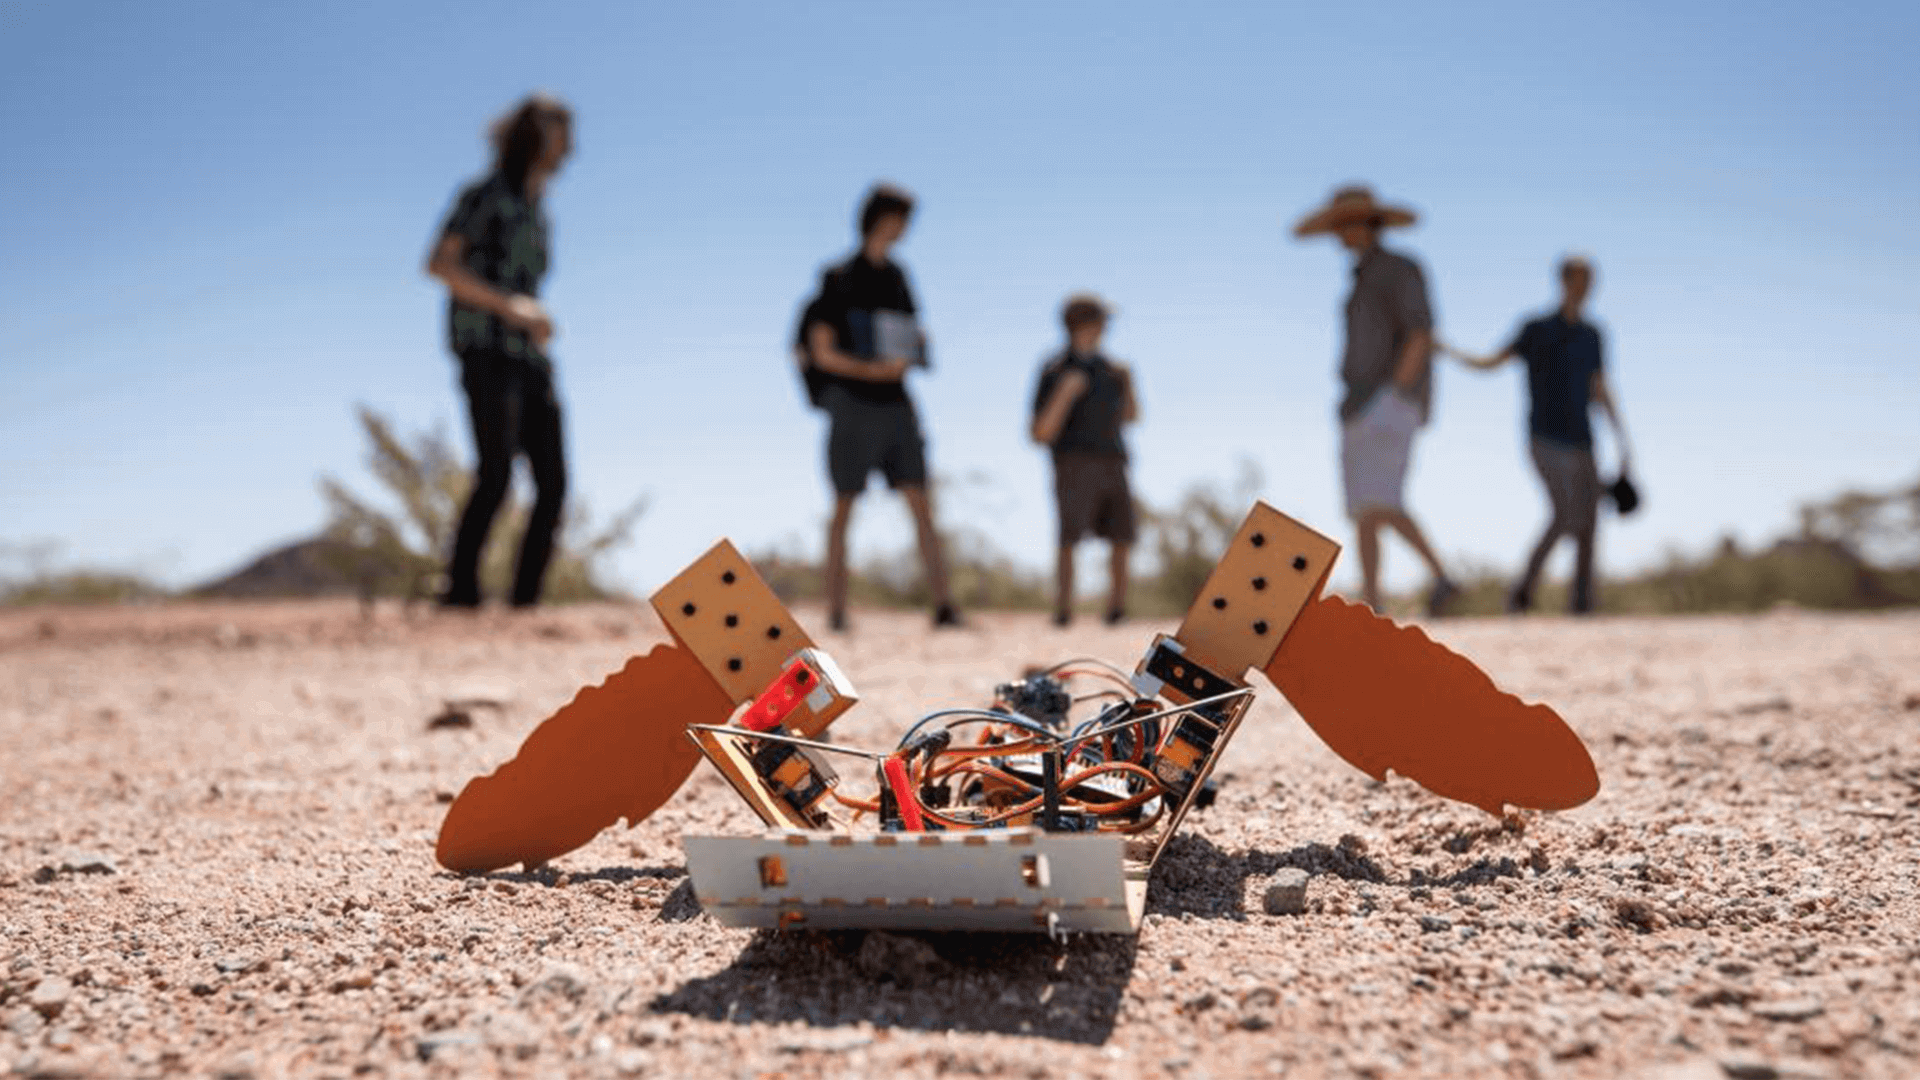 C-Turtle: The Paper Turtle Robot That Can Detect Landmines | All3DP